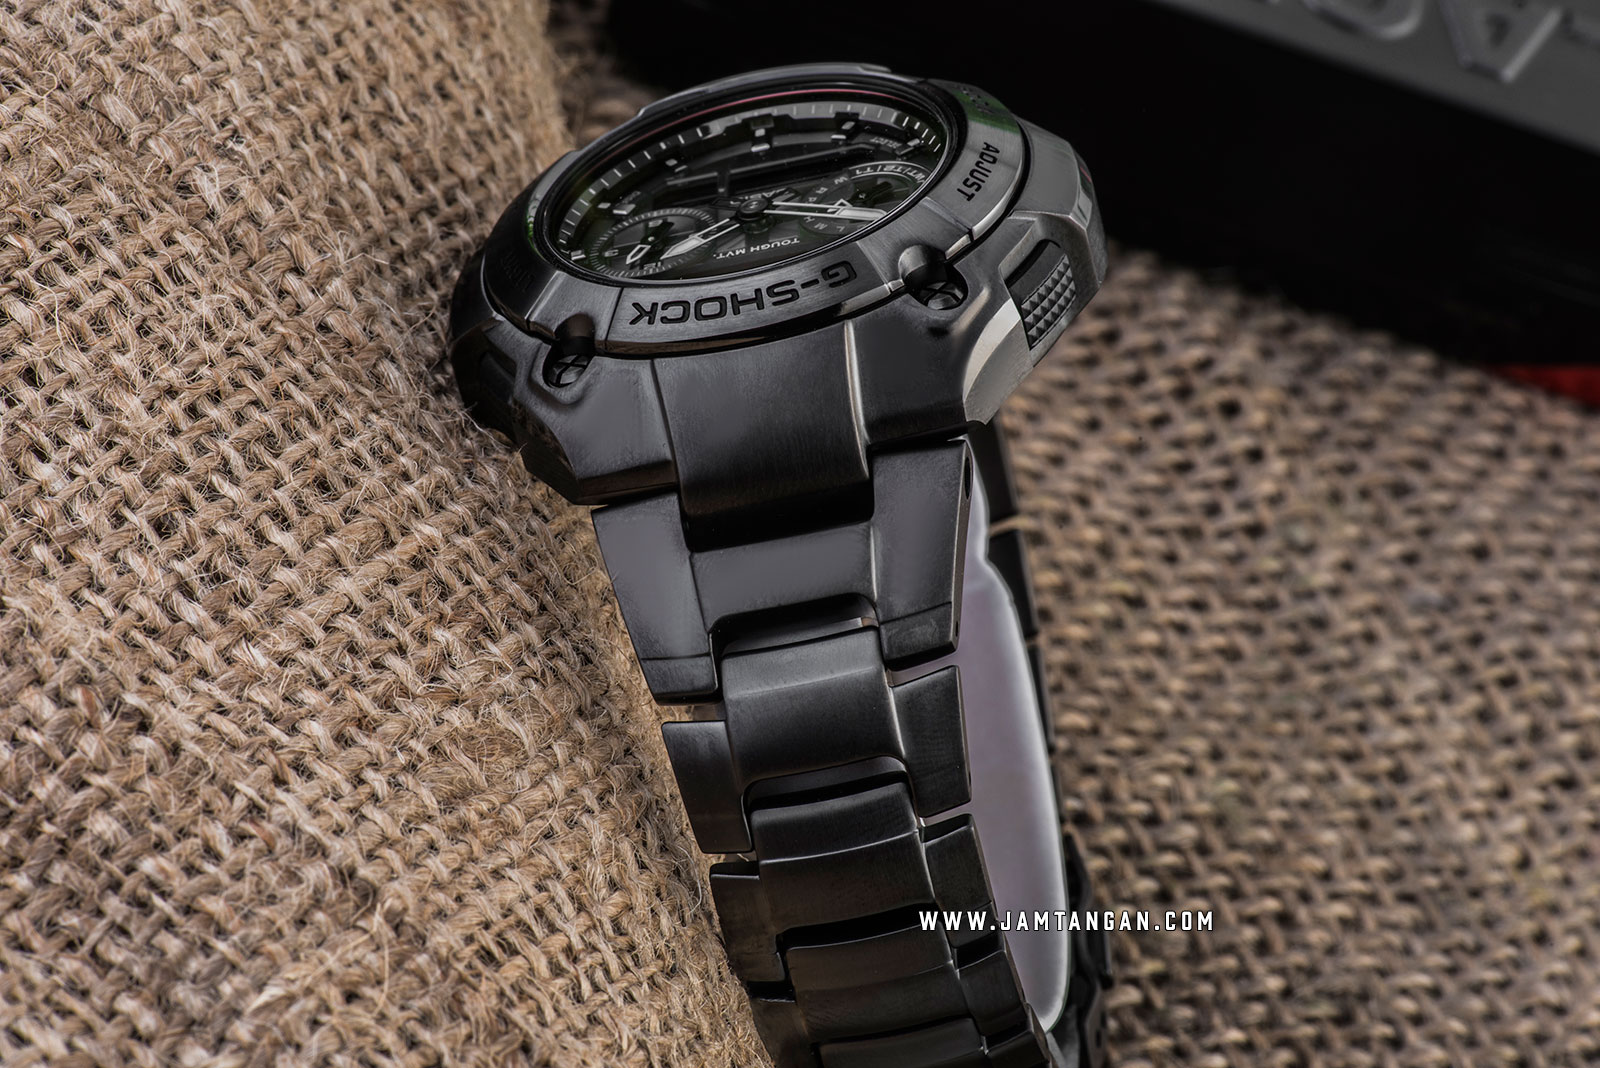 Casio G-Shock MR-G MRG-7700B-1BJF Titanium Sapphire Crystal (JDM) Machtwatch